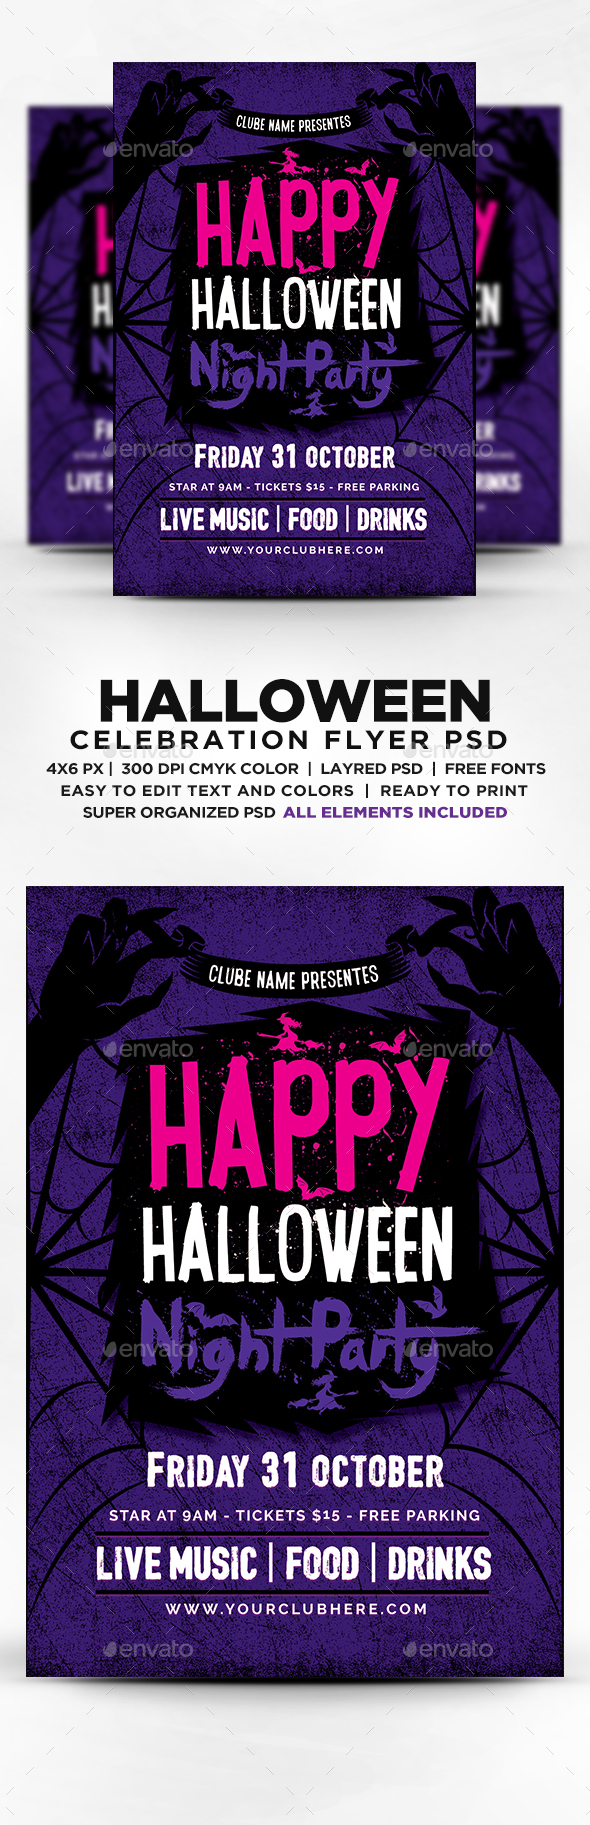 Happy Halloween Party Flyer Template PSD